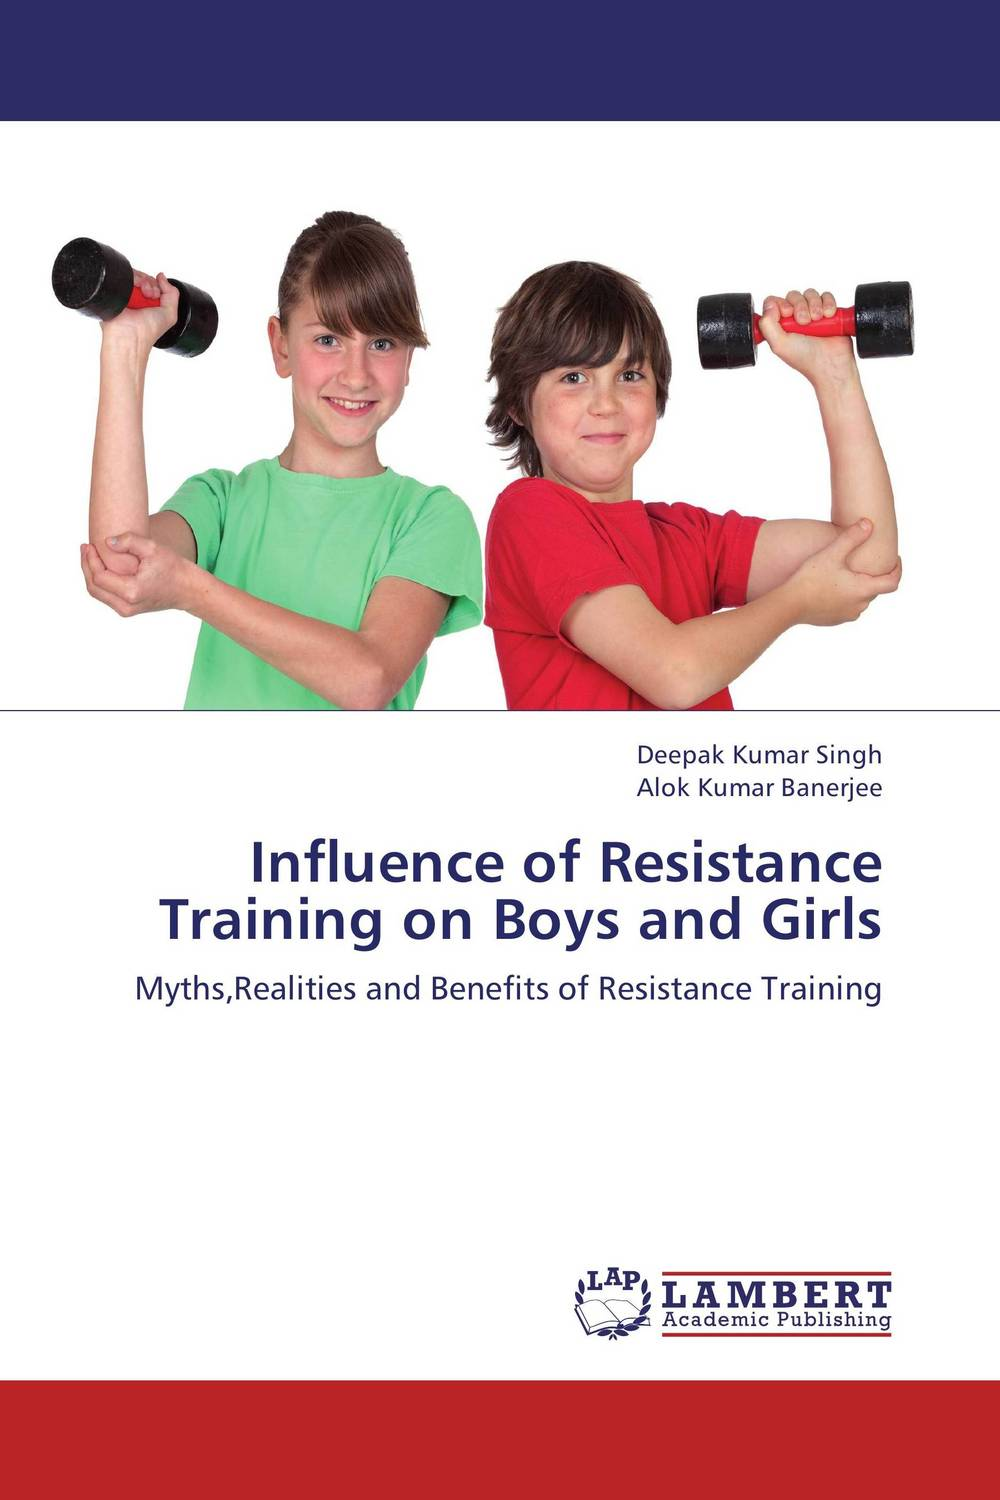 Influence of Resistance Training on Boys and Girls